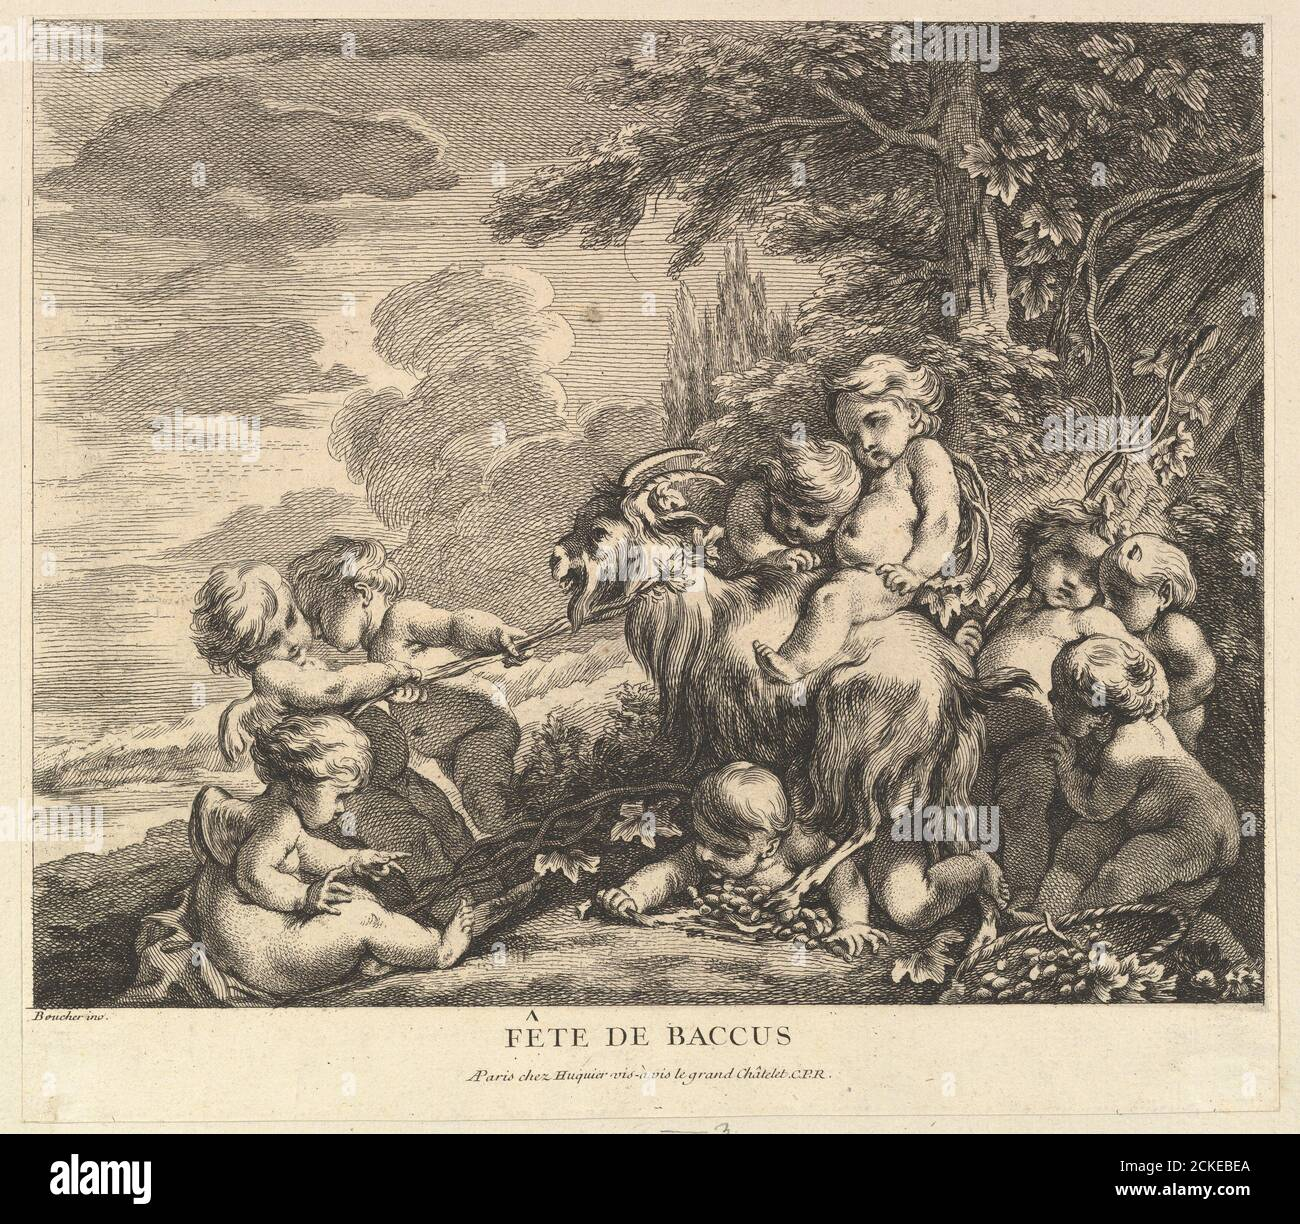 The Feast of Bacchus.jpg - 2CKEBEA Stock Photo